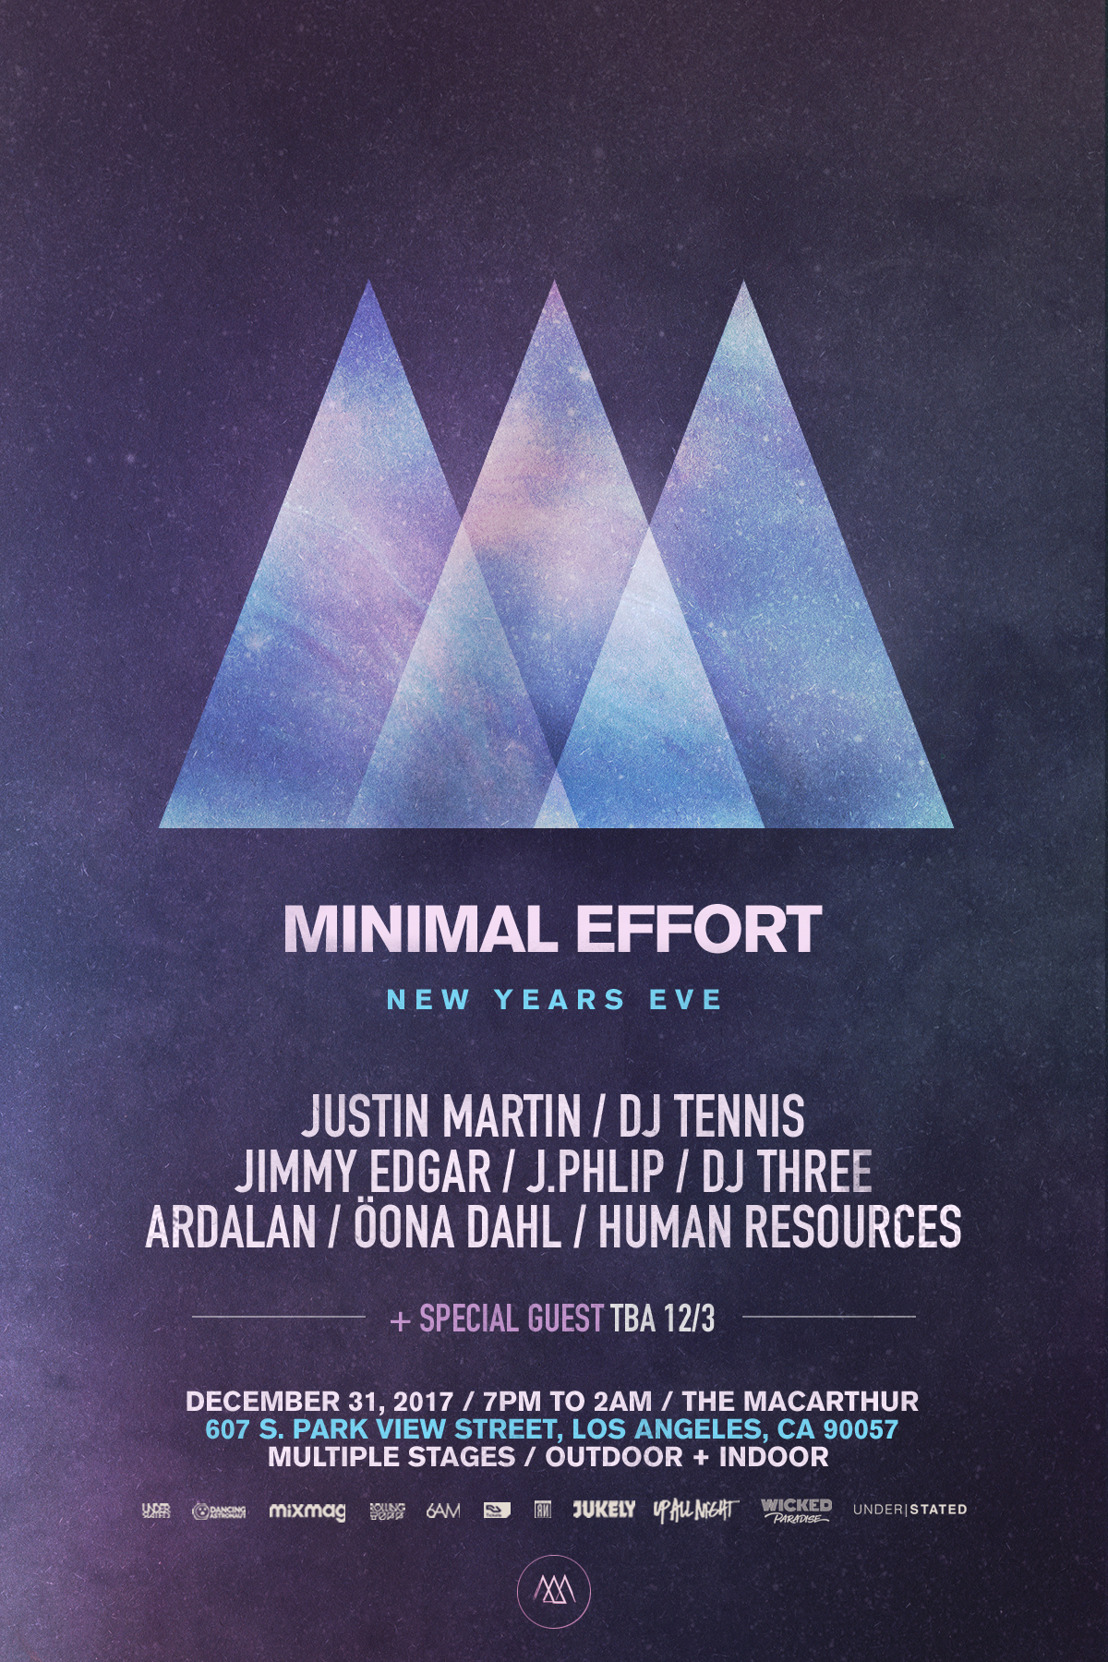 Minimal Effort Reveals Phase 1 Lineup and Location for 2017 Los Angeles New Year's Eve Event